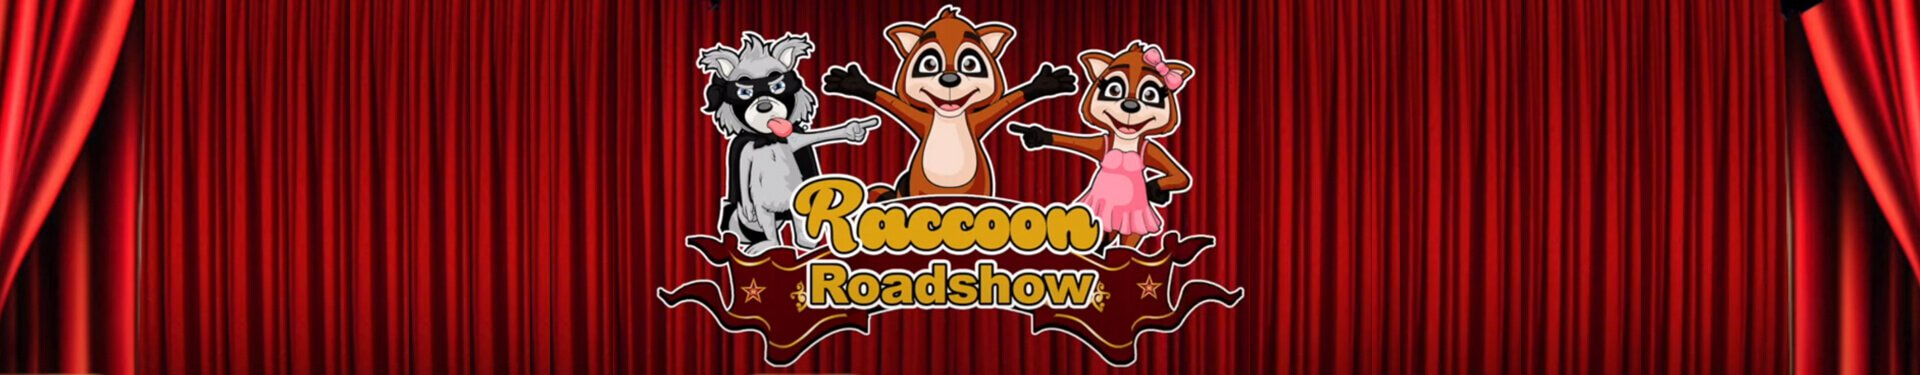 racoon roadshow event